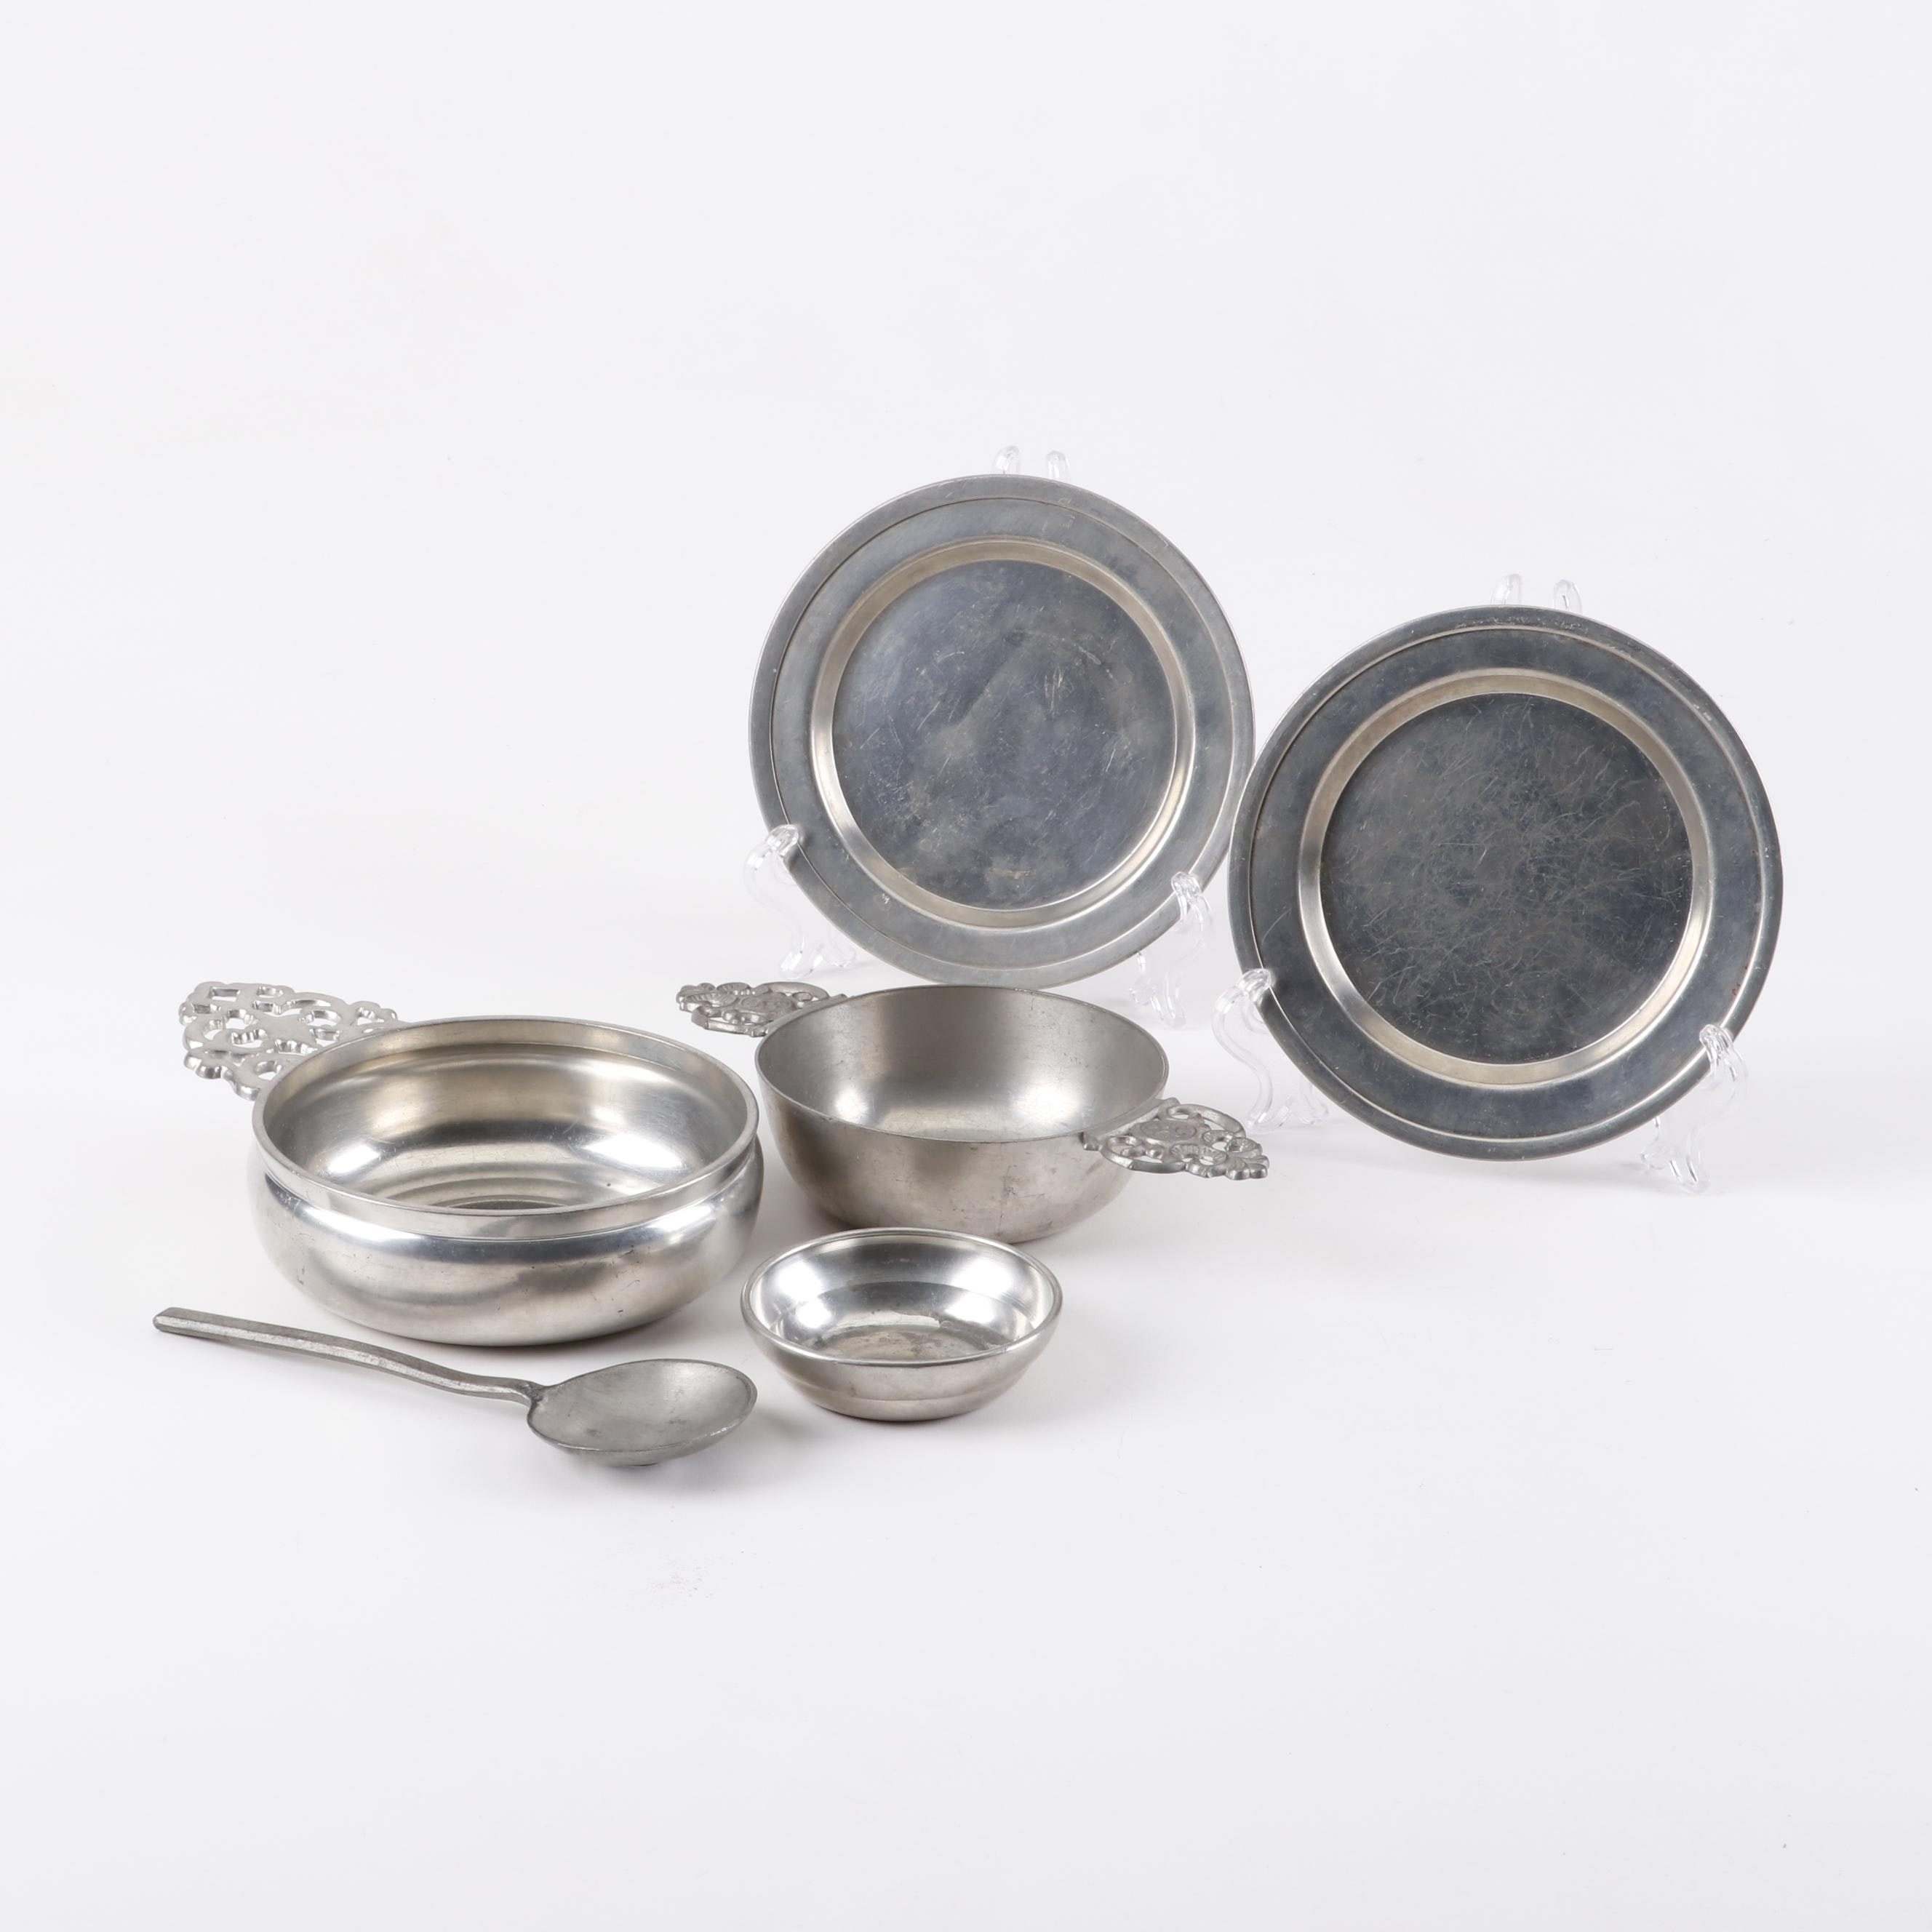 Vintage Pewter Tableware